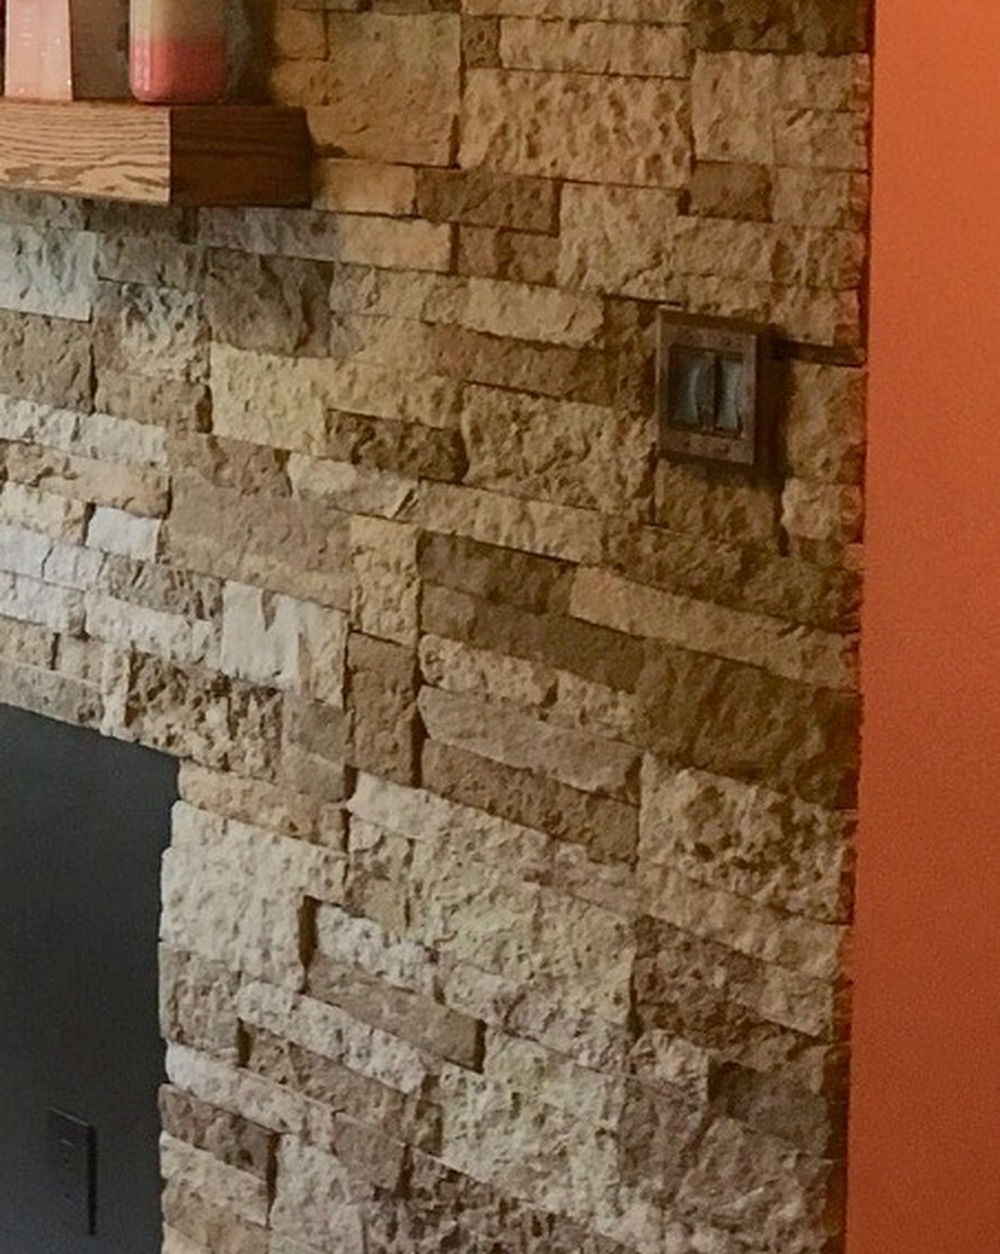 Airstone Wall Cumberland Oh 2017 Mural Photo Album By